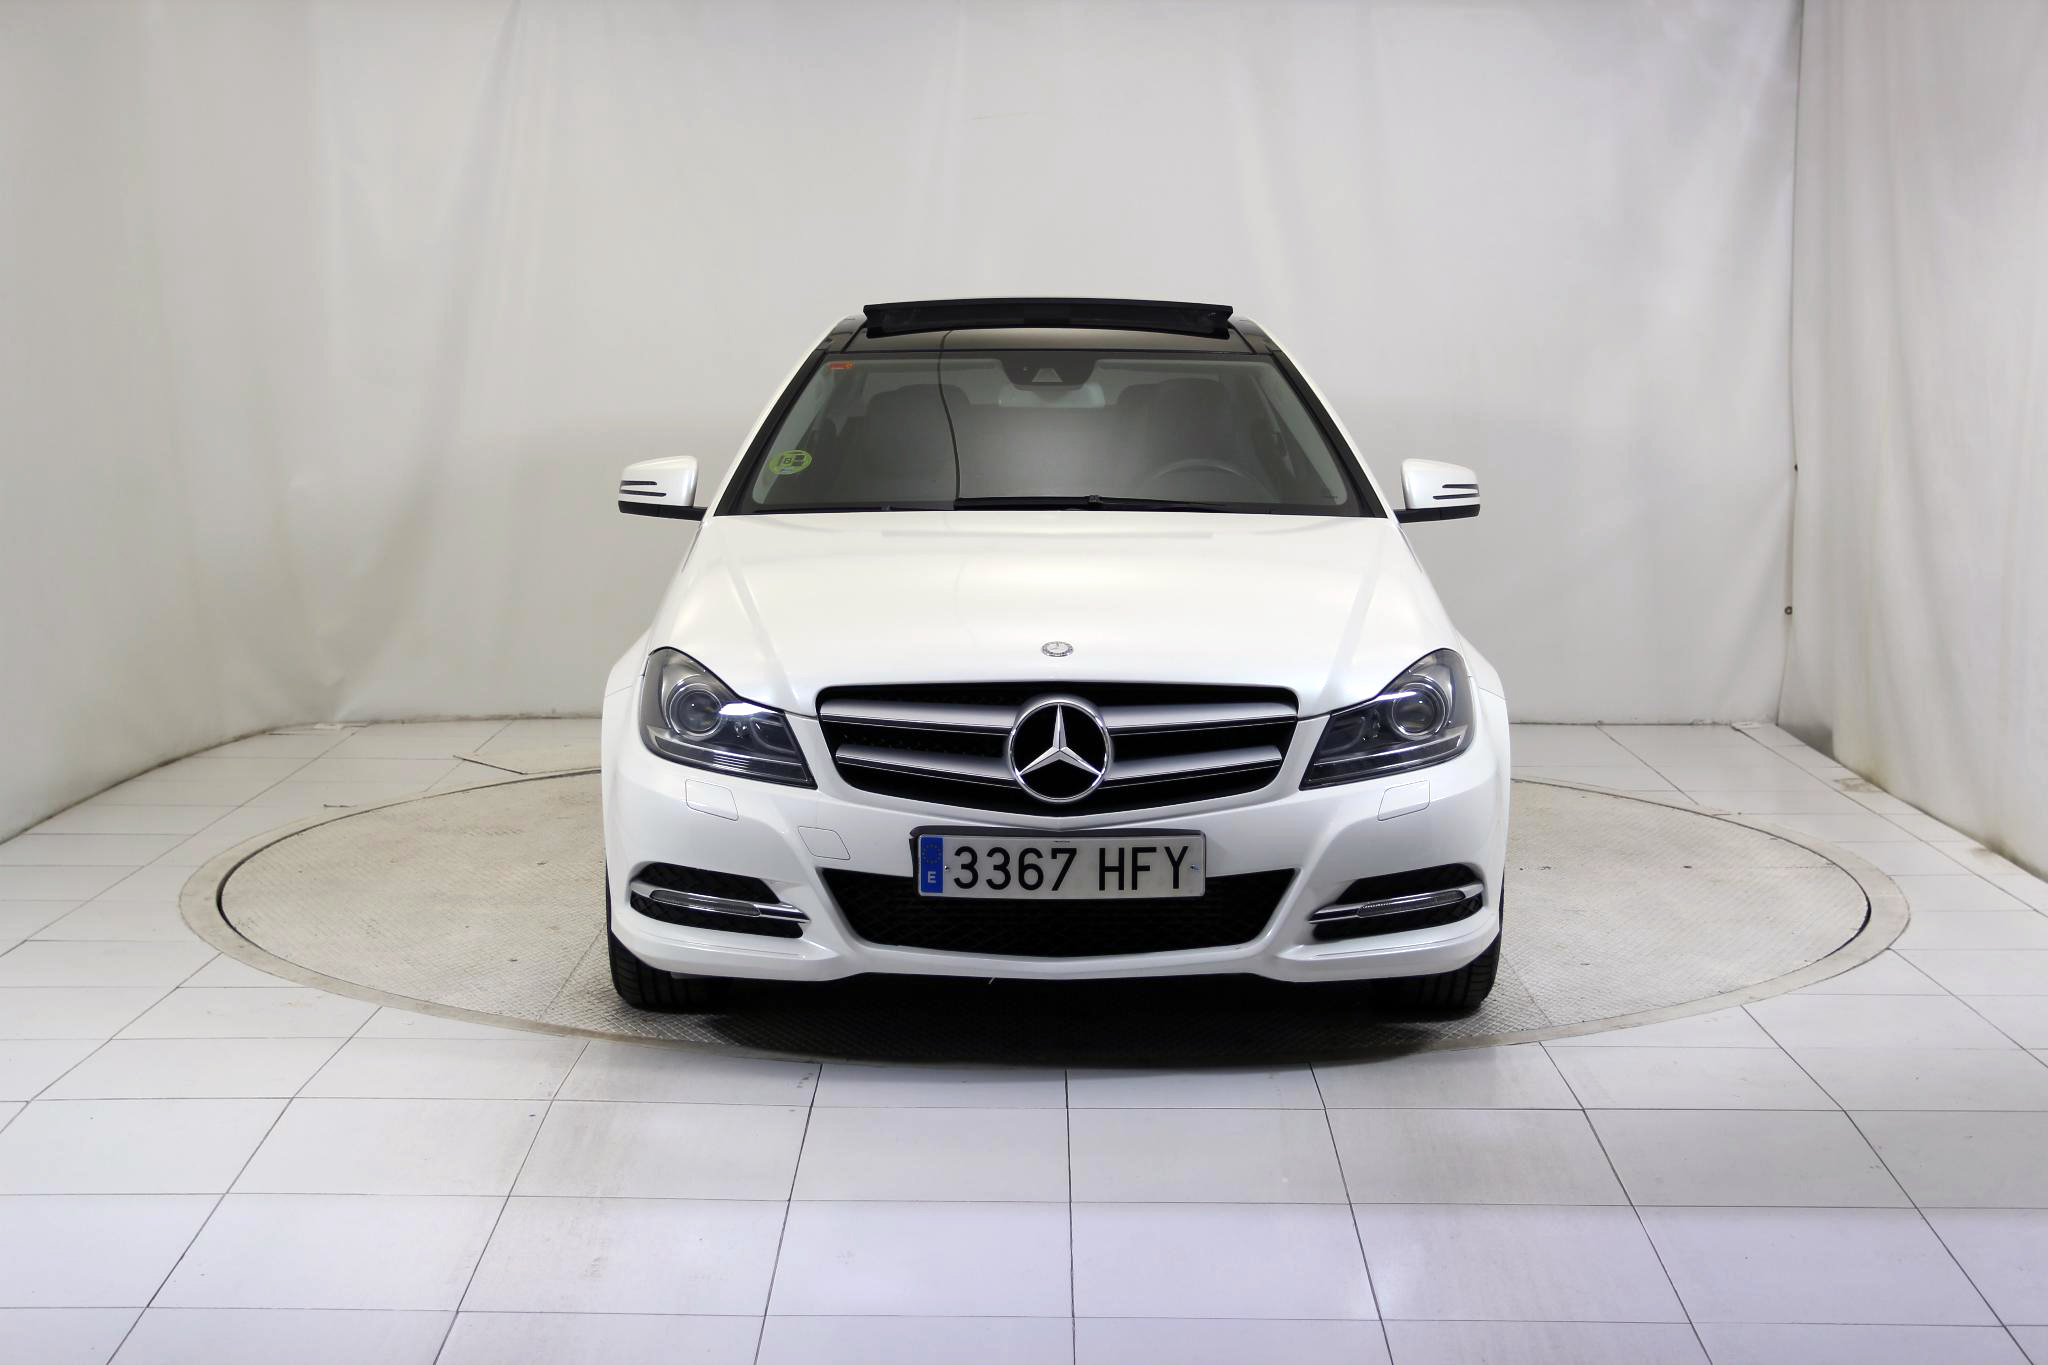 Mercedes-Benz Clase C CLASE C COUPE 220 CDI BLUE EFFICIENCY imagen 3